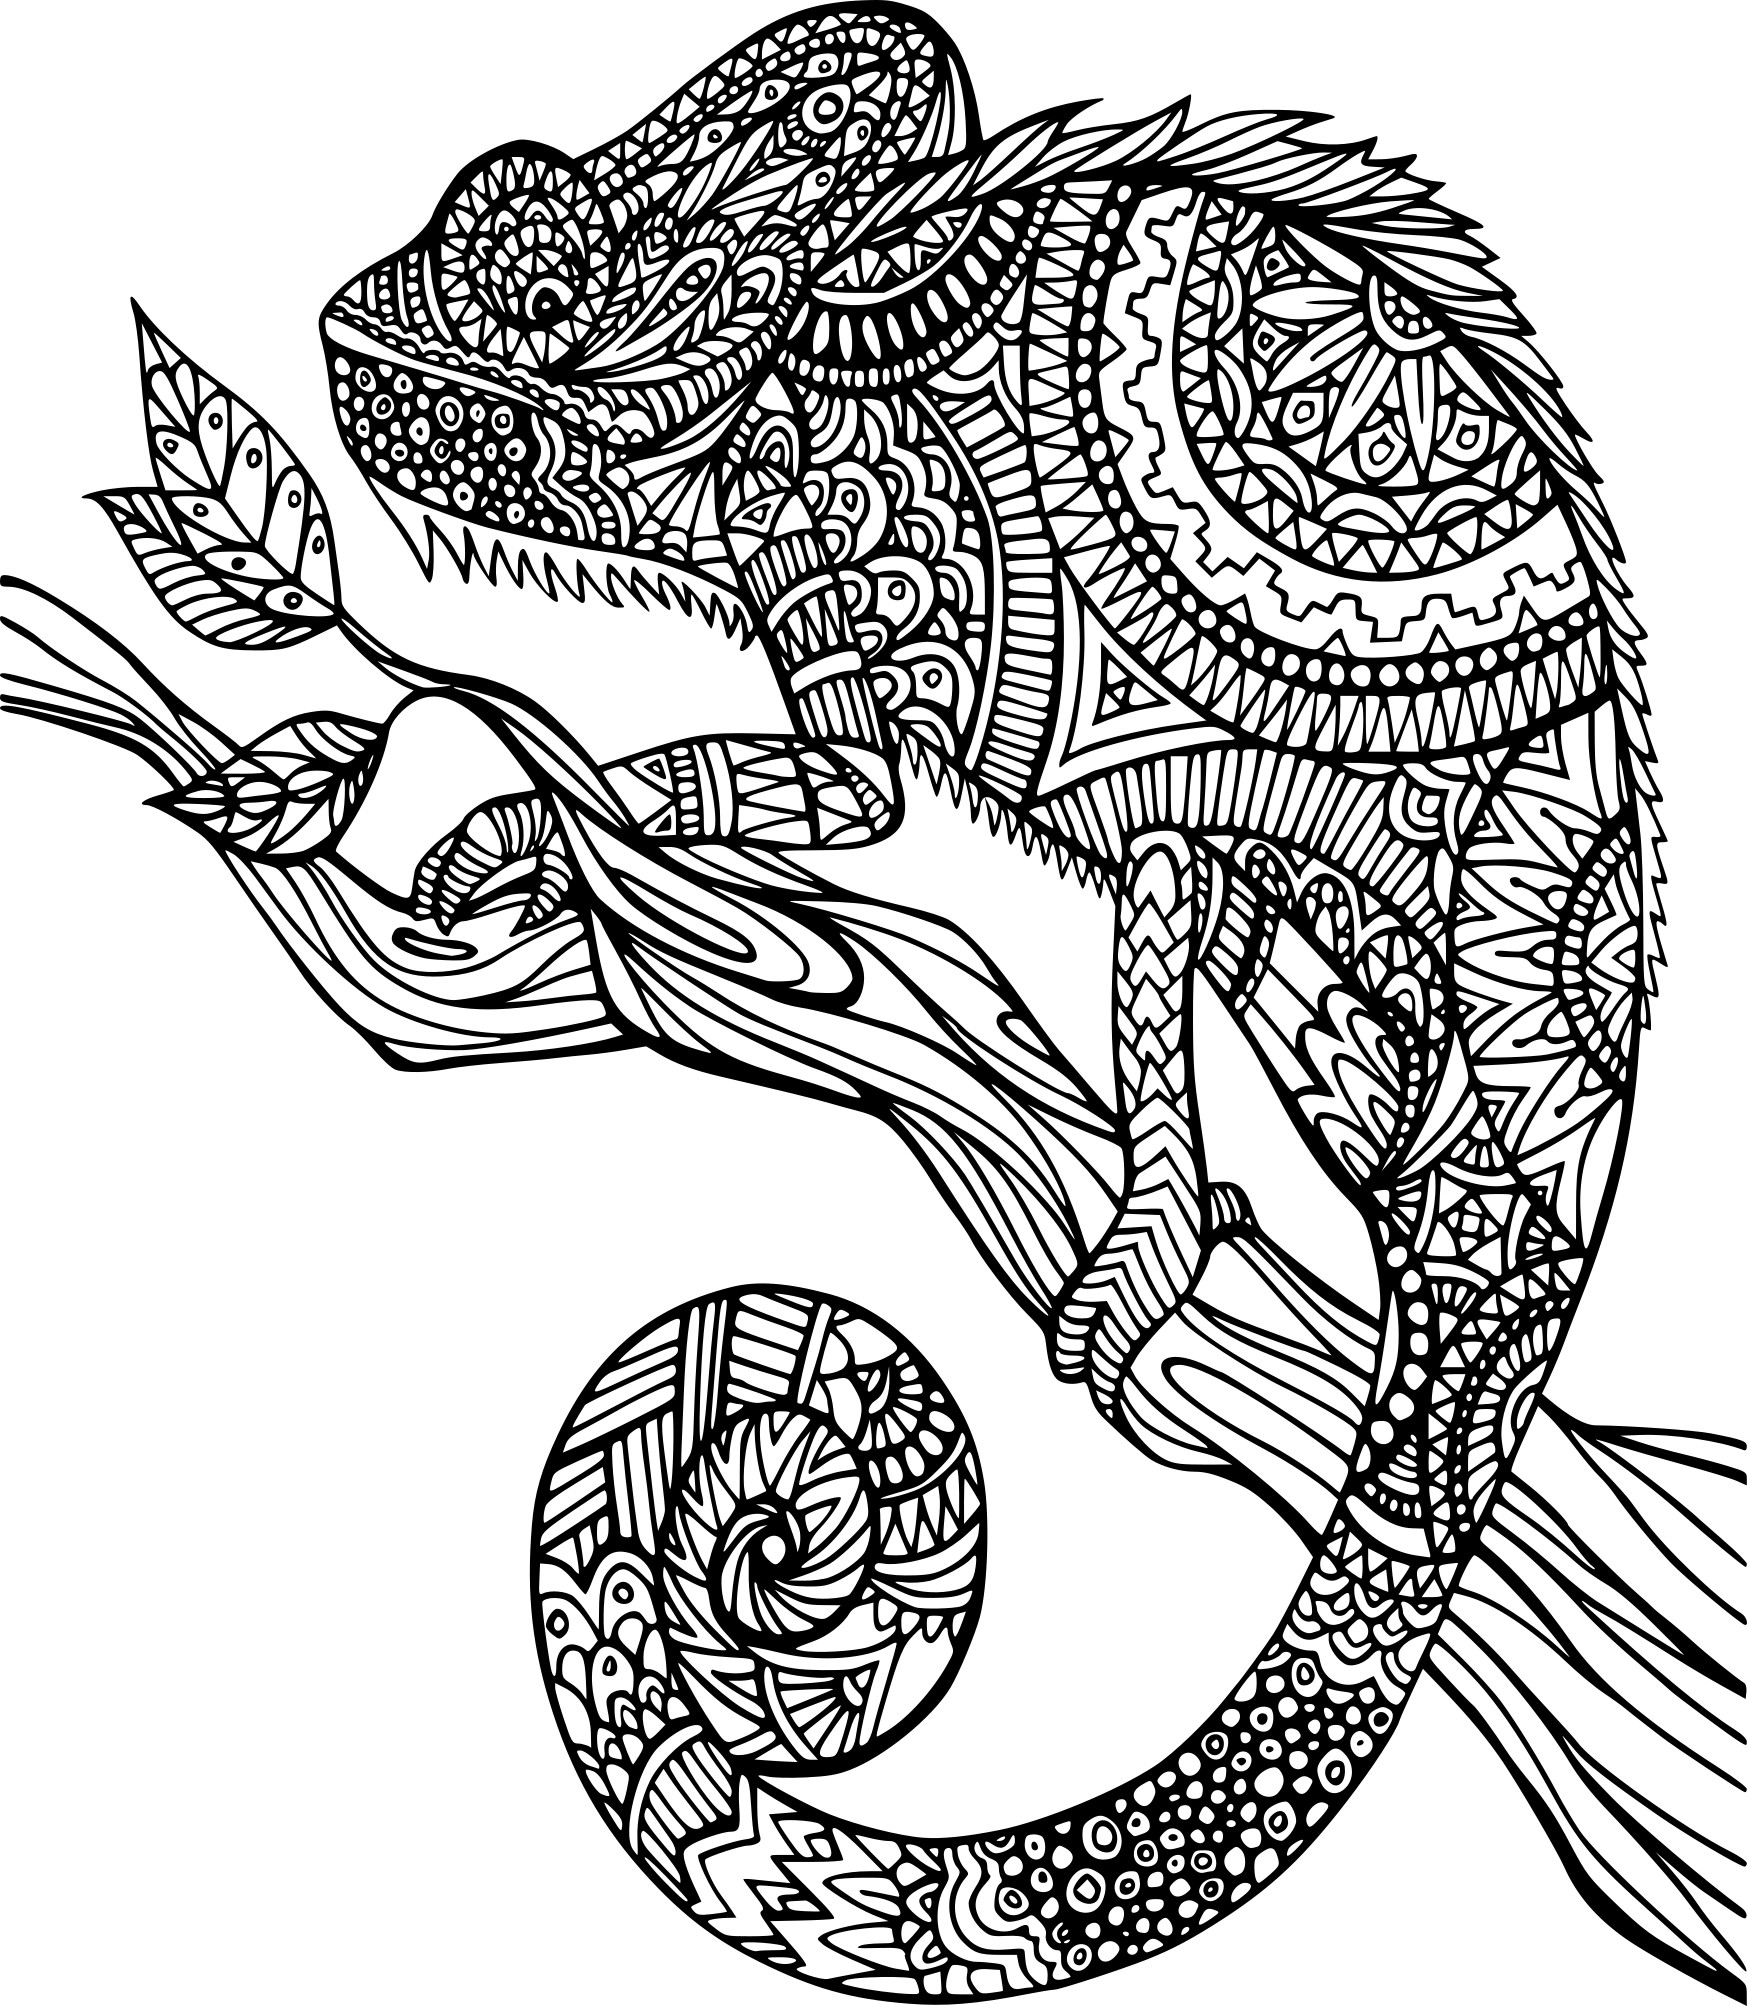 Coloriage anti stress cam l on imprimer sur coloriages info - Coloriage anti stress gratuit ...